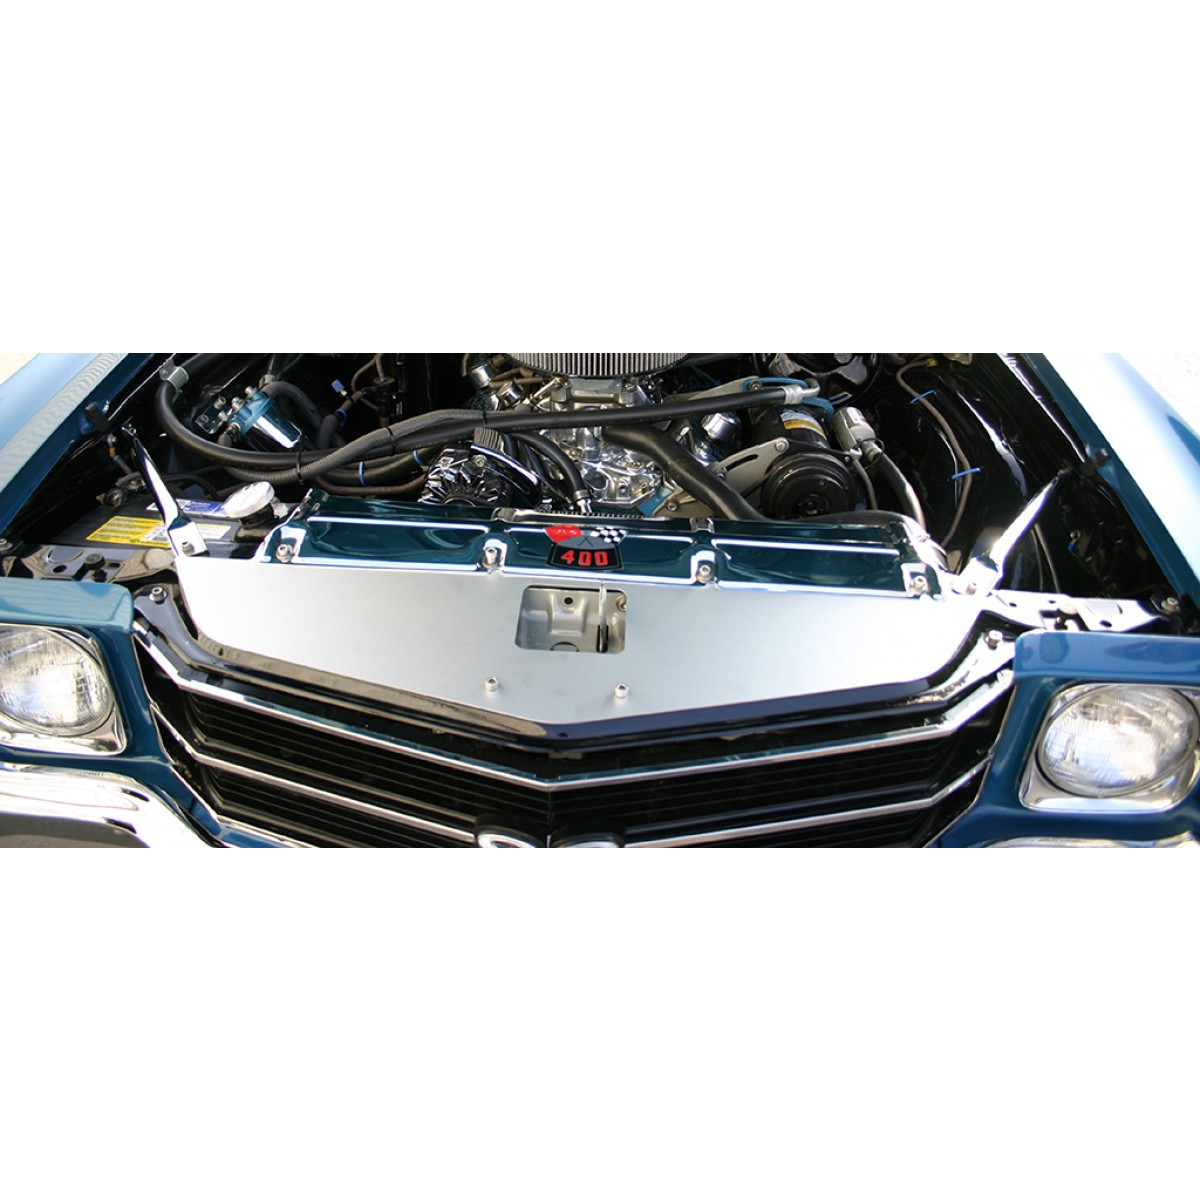 1970 1972 chevelle monte carlo anodized show panel with bowtie chevrolet engraved. Black Bedroom Furniture Sets. Home Design Ideas